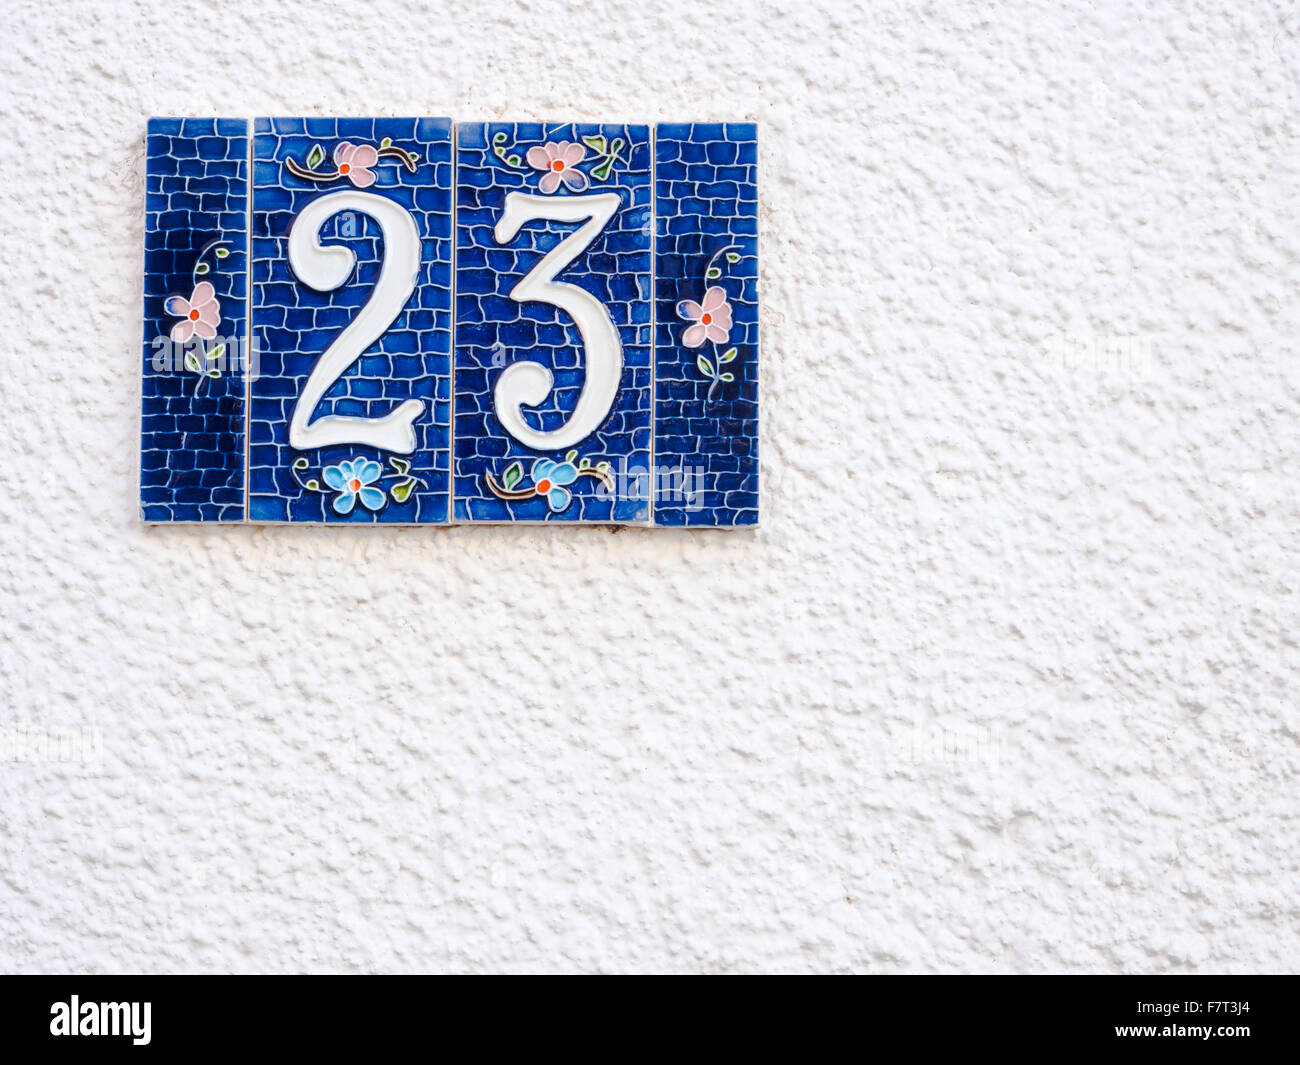 Street number 23. Particular of artistic street number - Stock Image